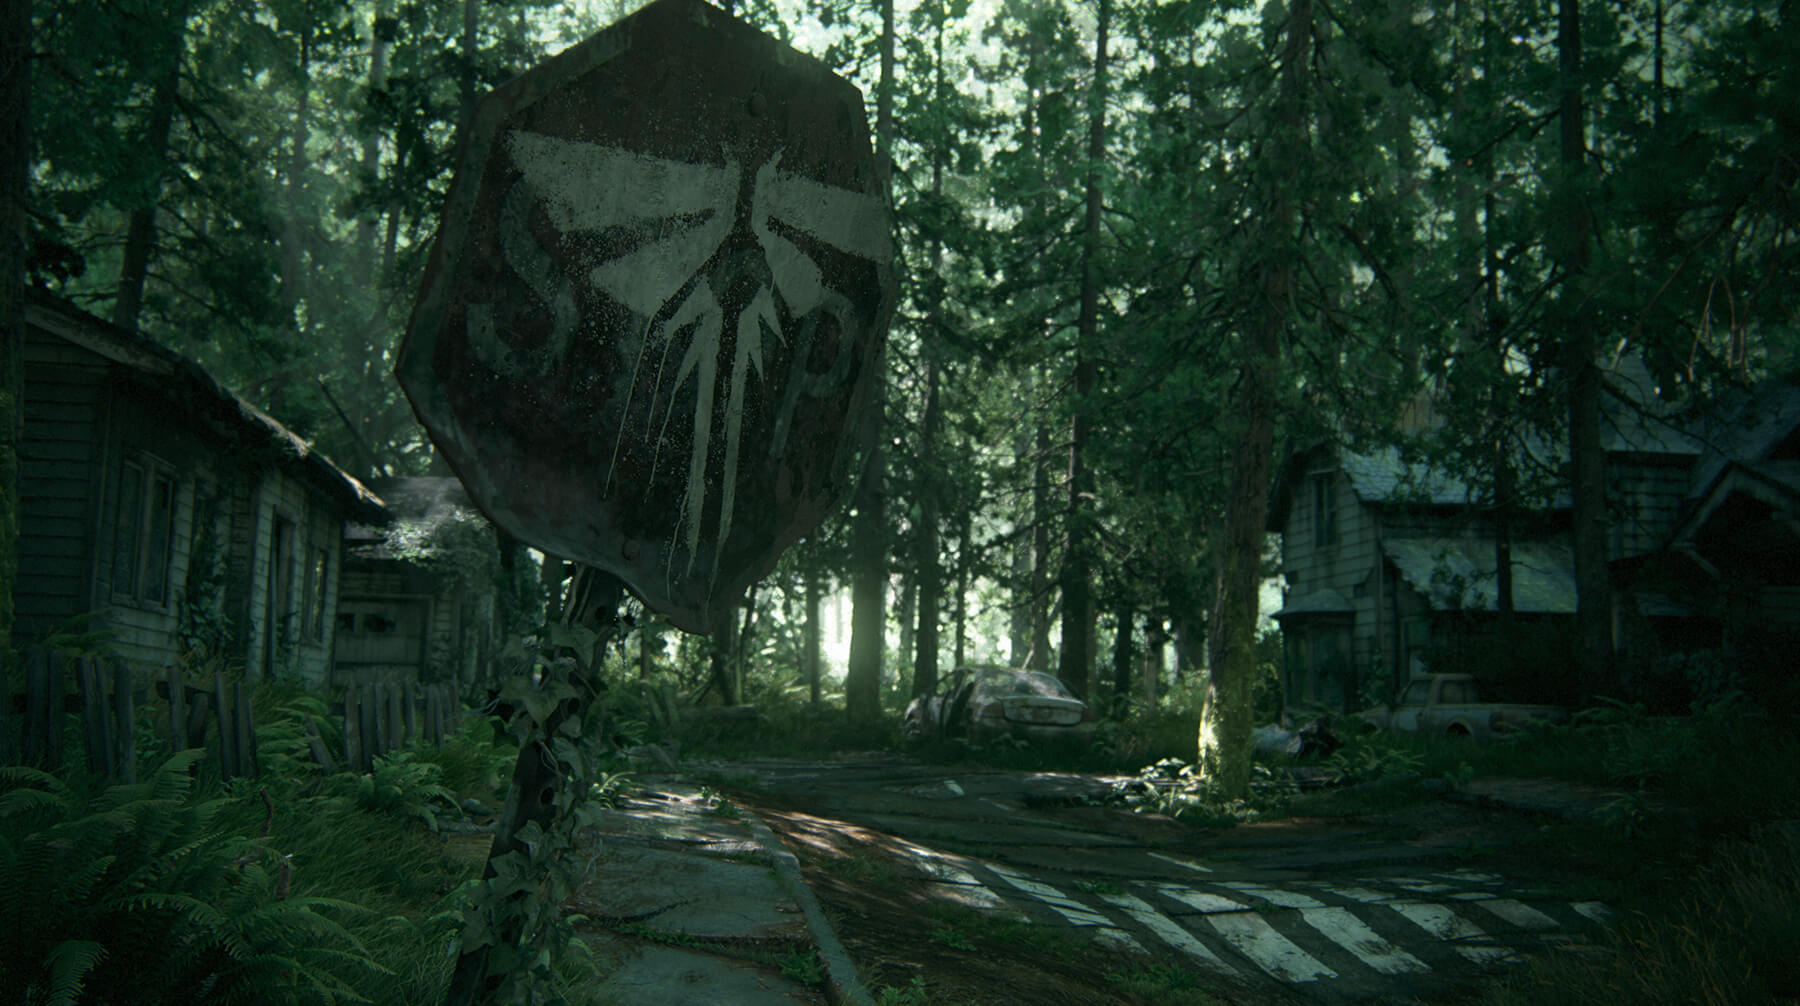 A decaying residential street, surrounded by forest